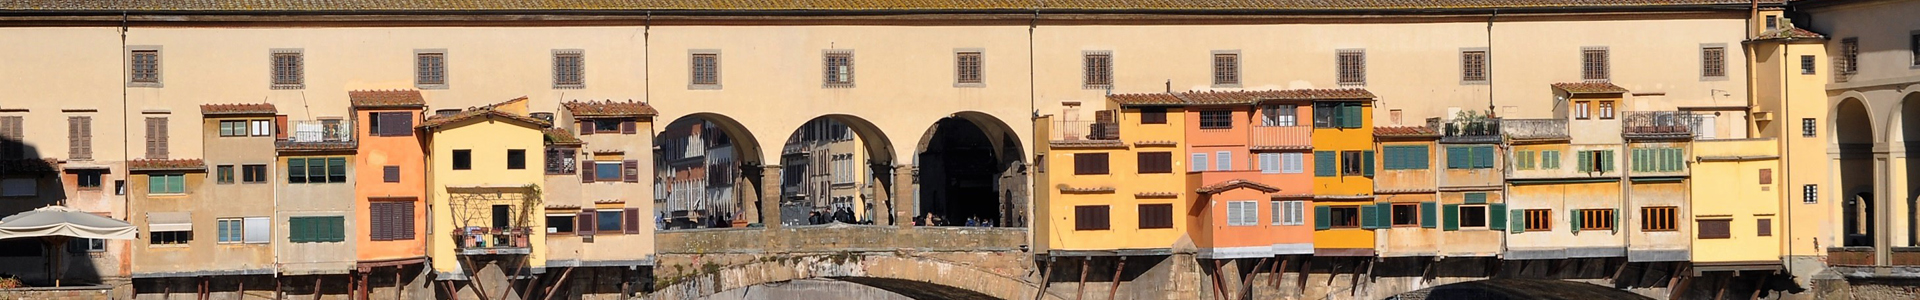 Guided tours of Florence | Walking tours of Florence | Guidedflorence.com